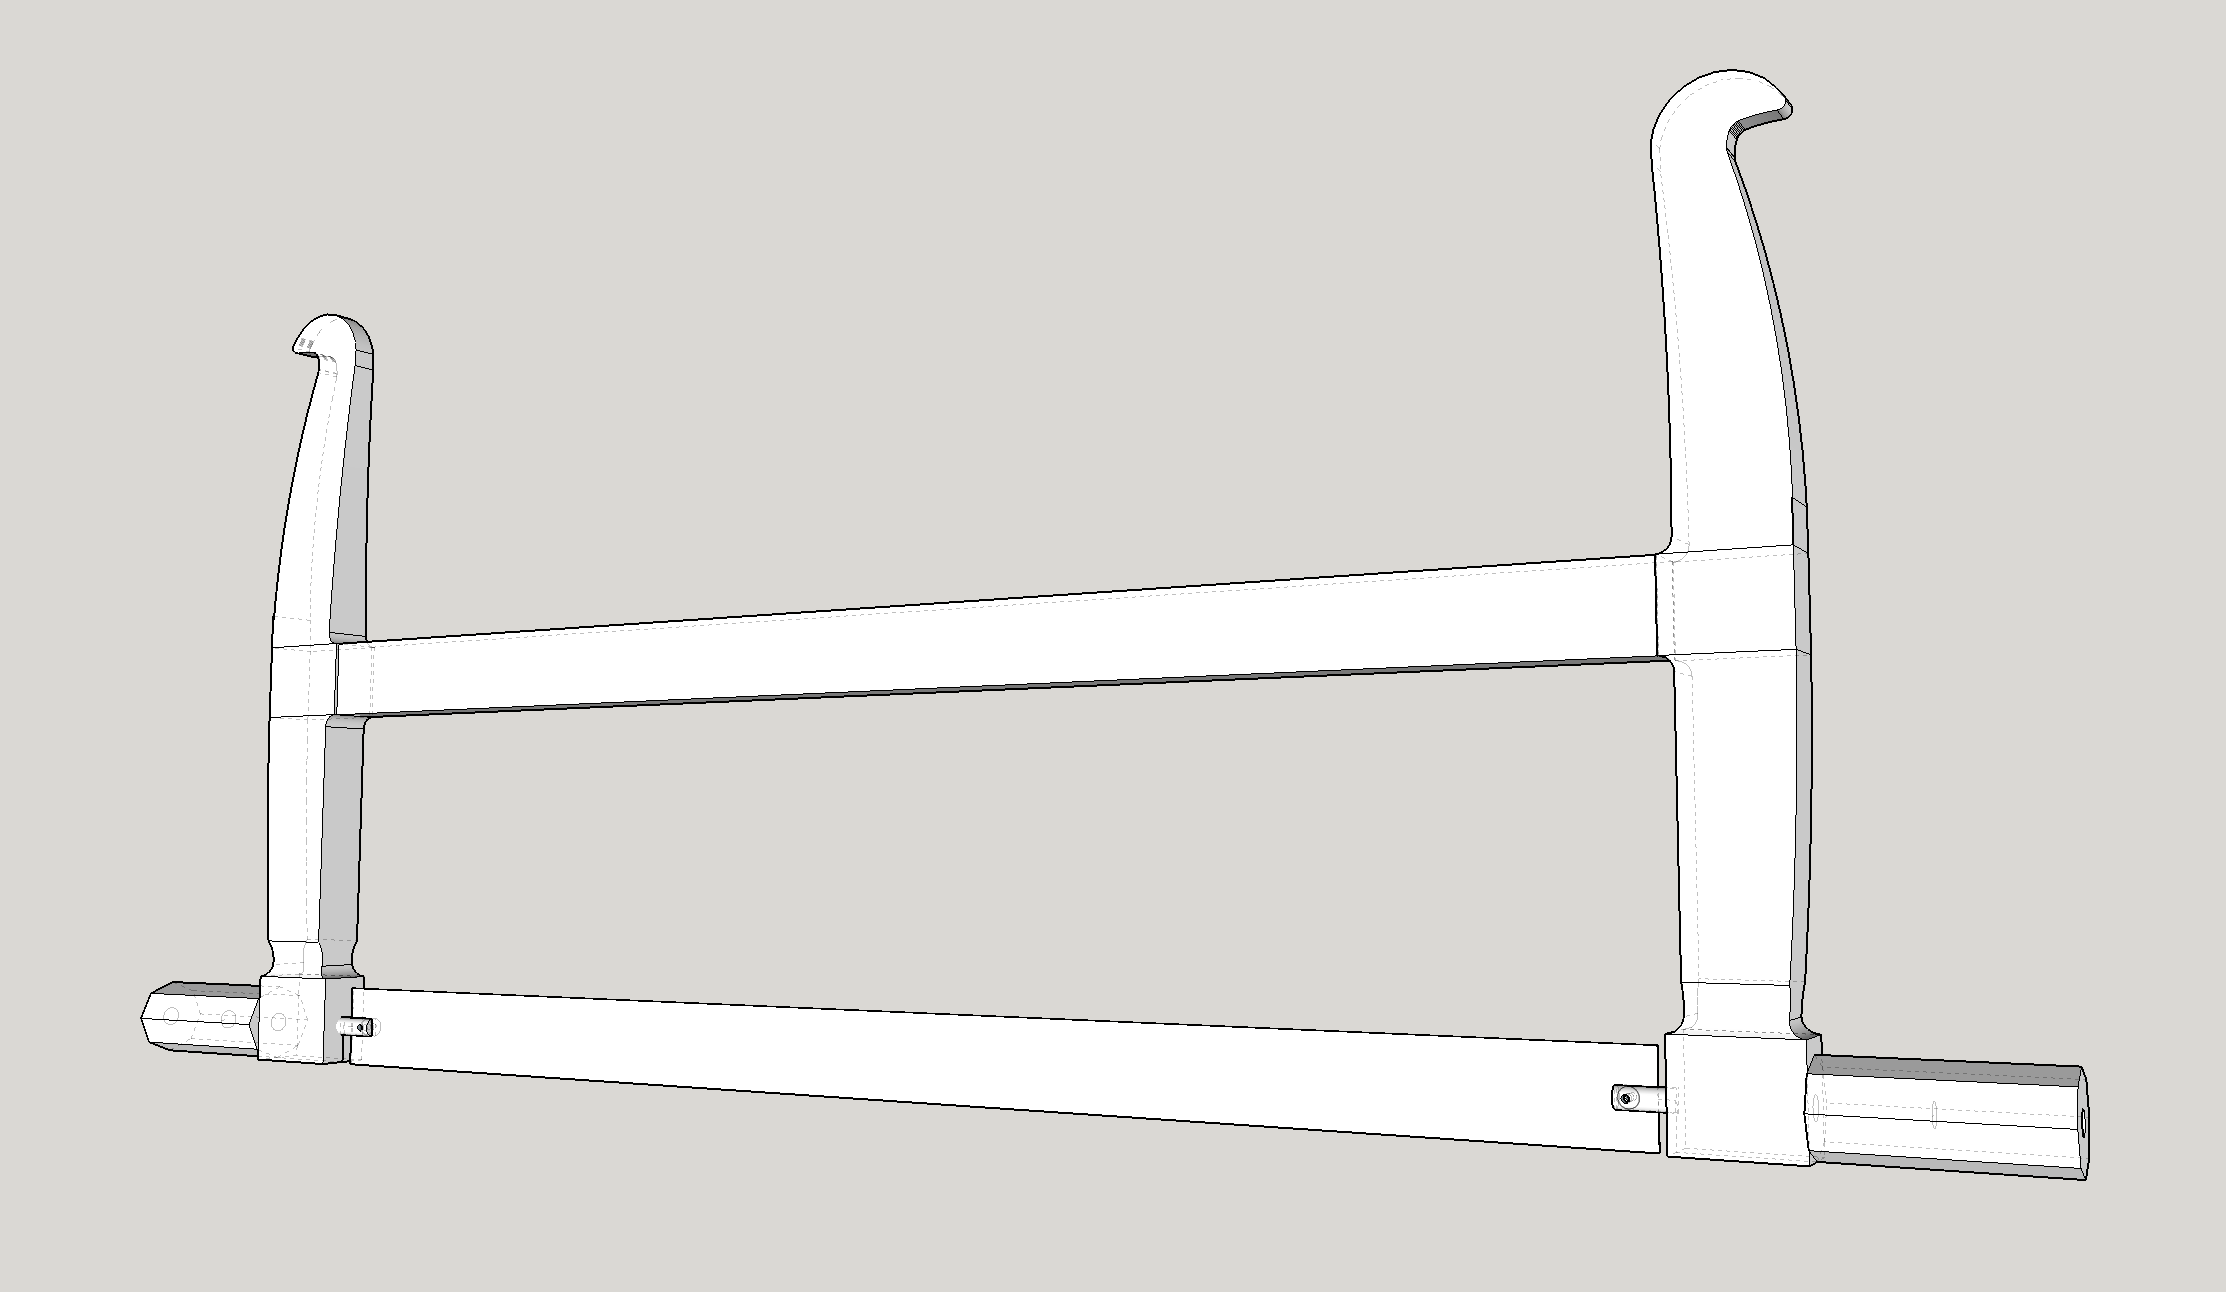 A sketchup 3D rendering of the frame saw.